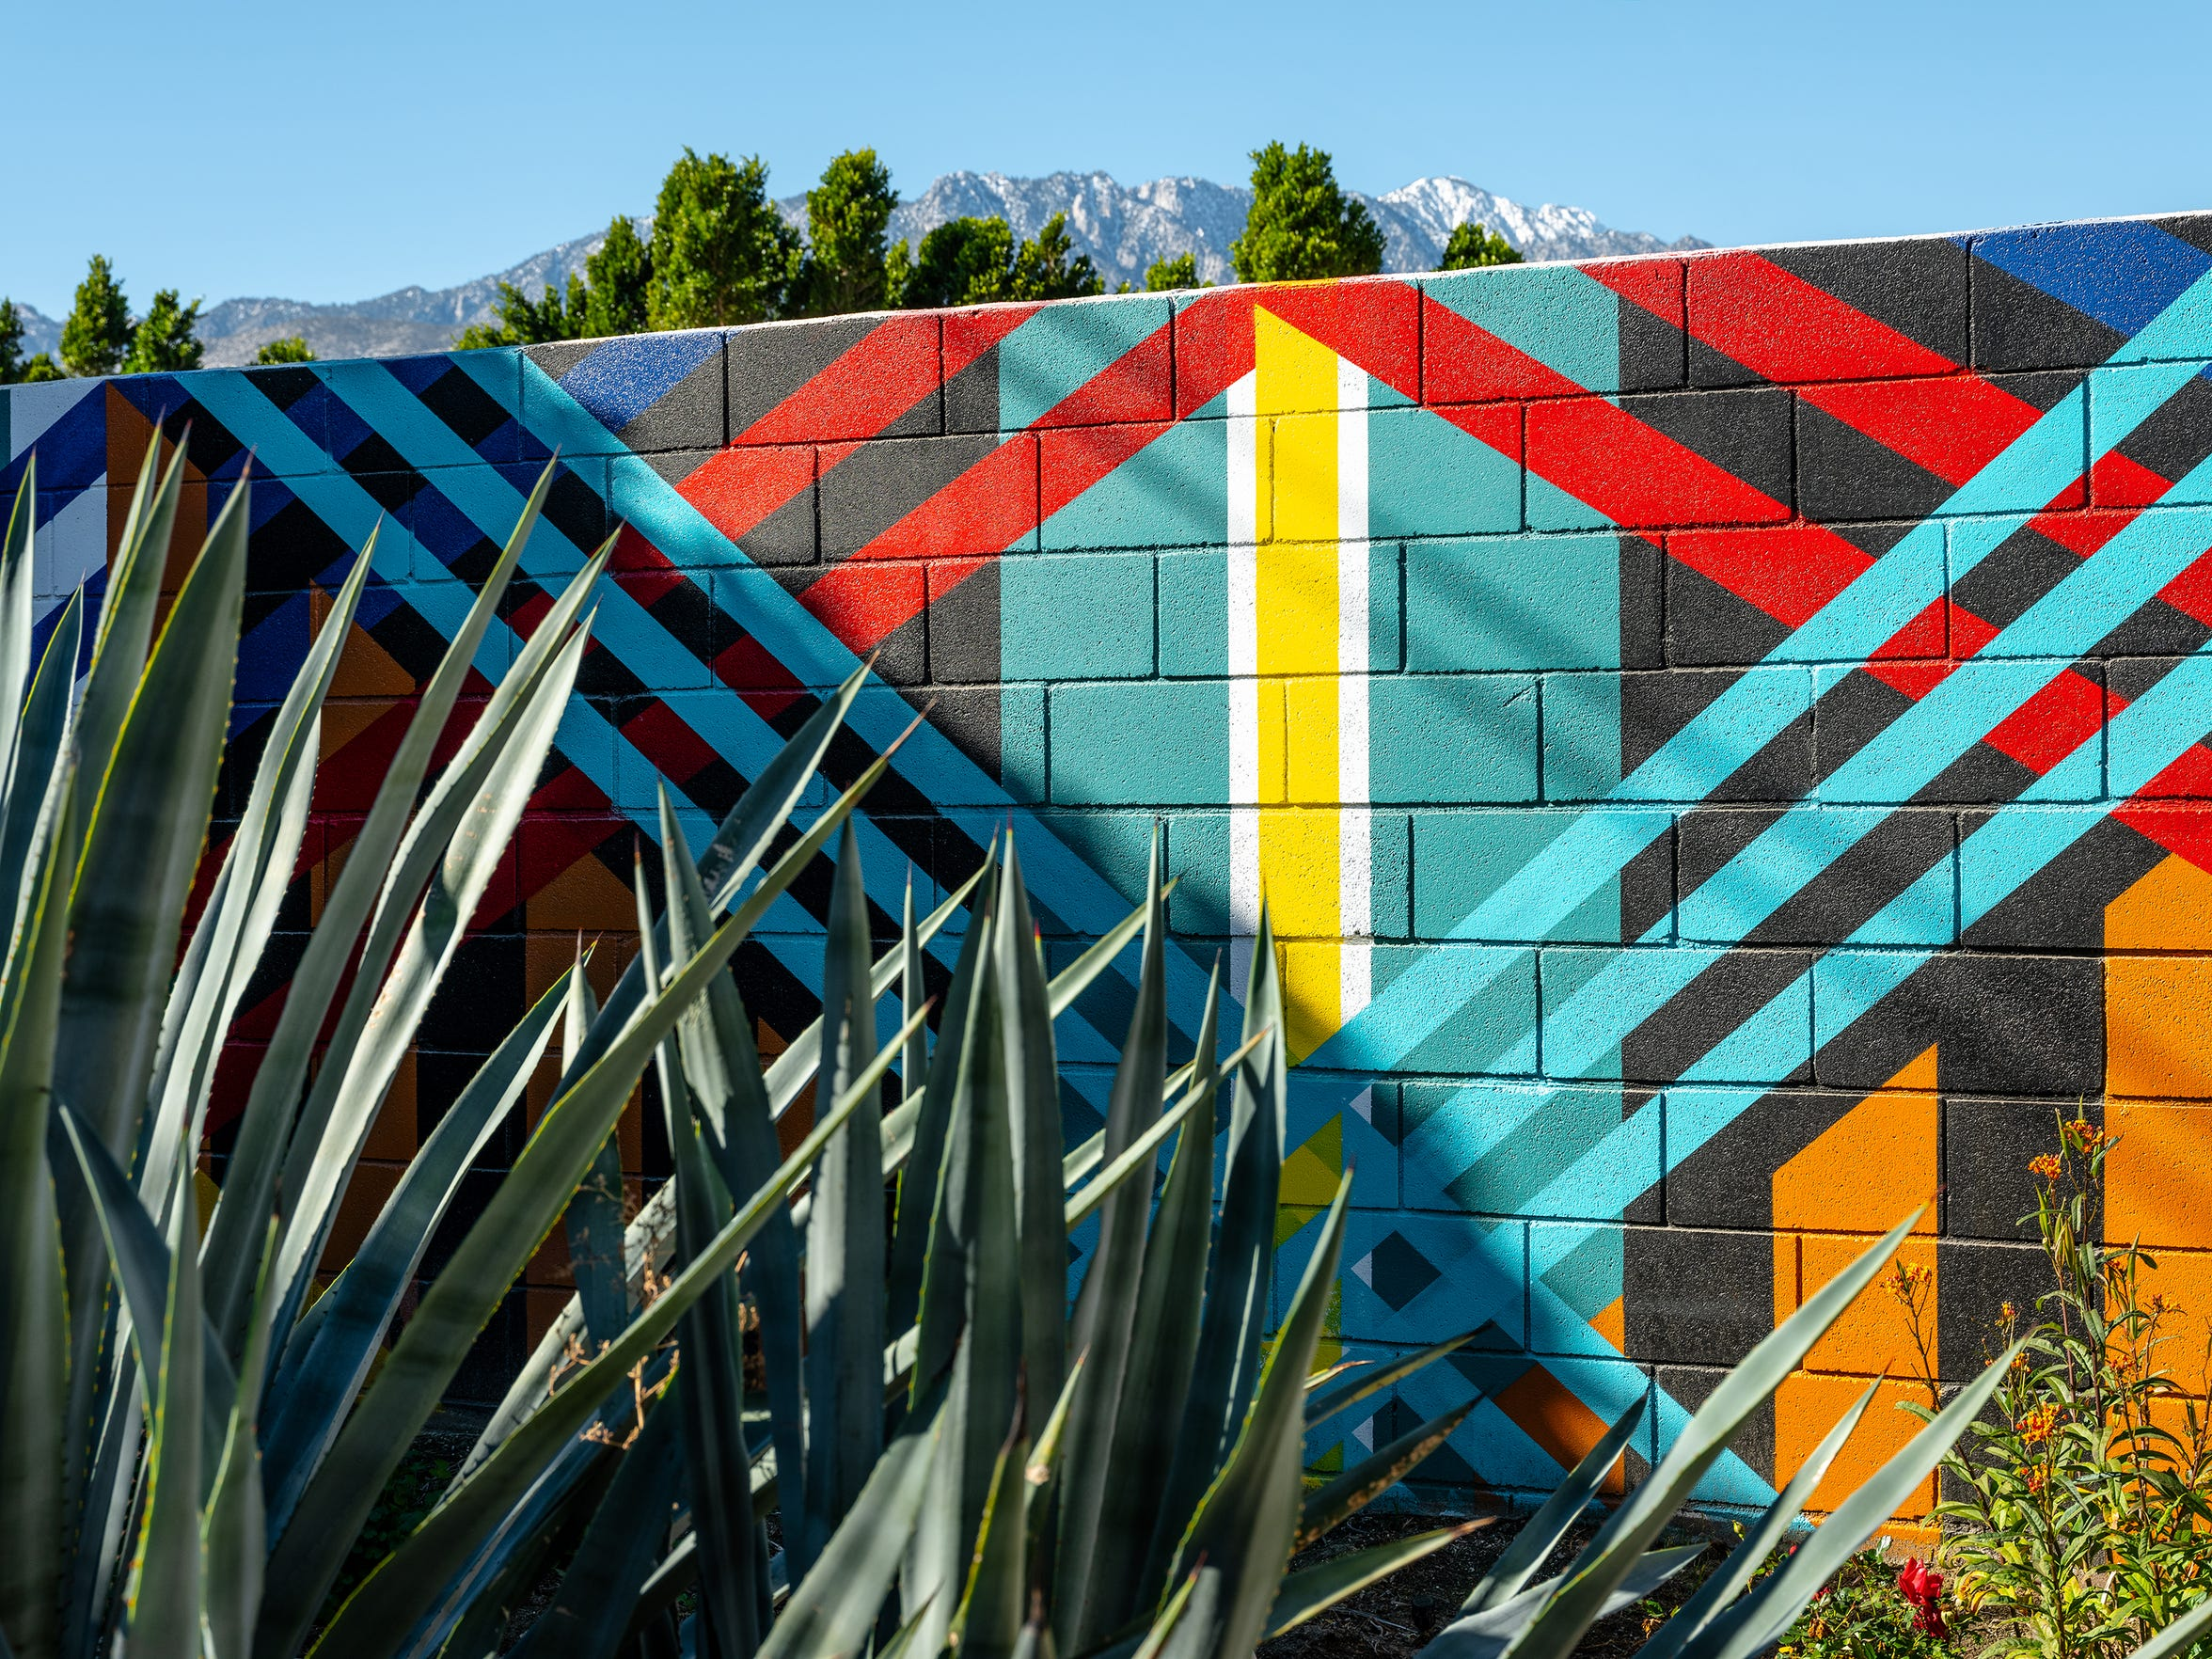 Ryan Campbell completed the mural featured on a back wall at Sanctuary Palm Springs.